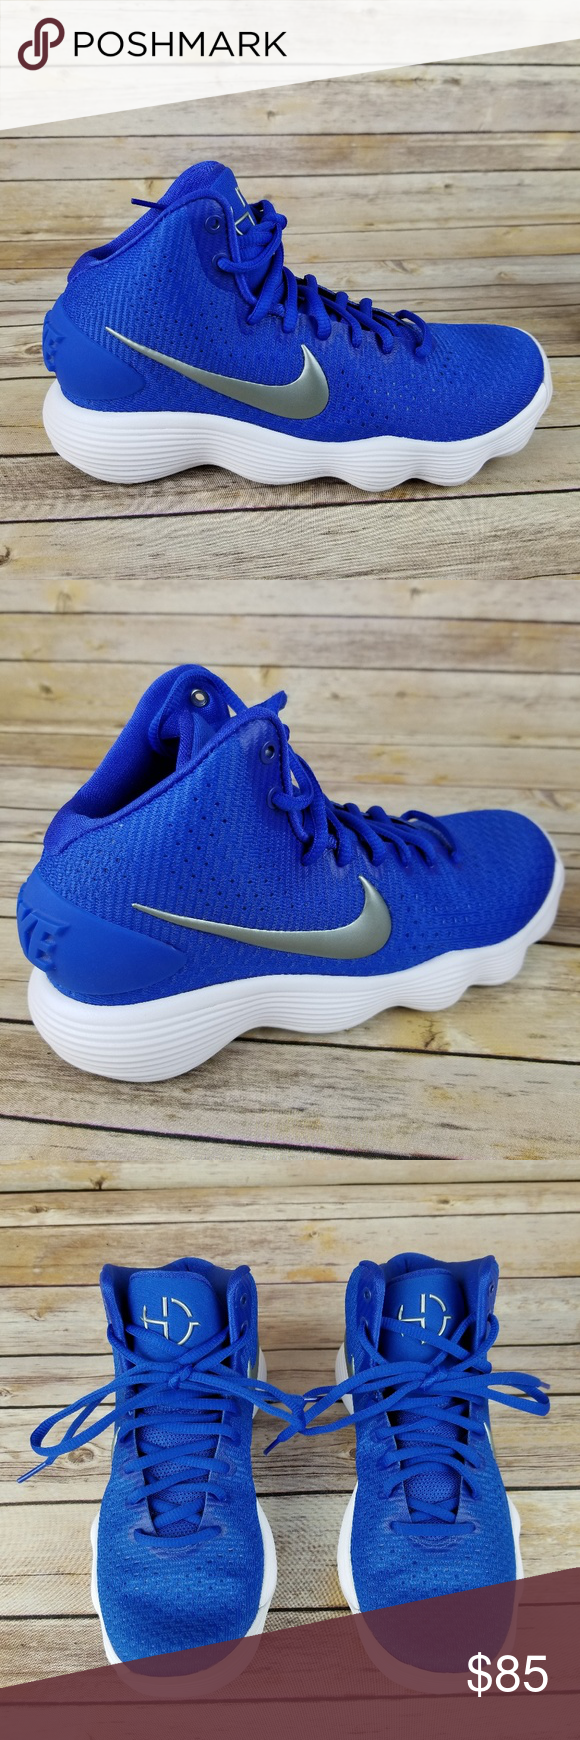 ac81ac6ebb94 Nike Hyperdunk 2017 TB Game Royal Blue  Silver Brand new without the box.  Never been worn. Size 7. Pretty royal blue and metallic silver color. Nike  Shoes ...